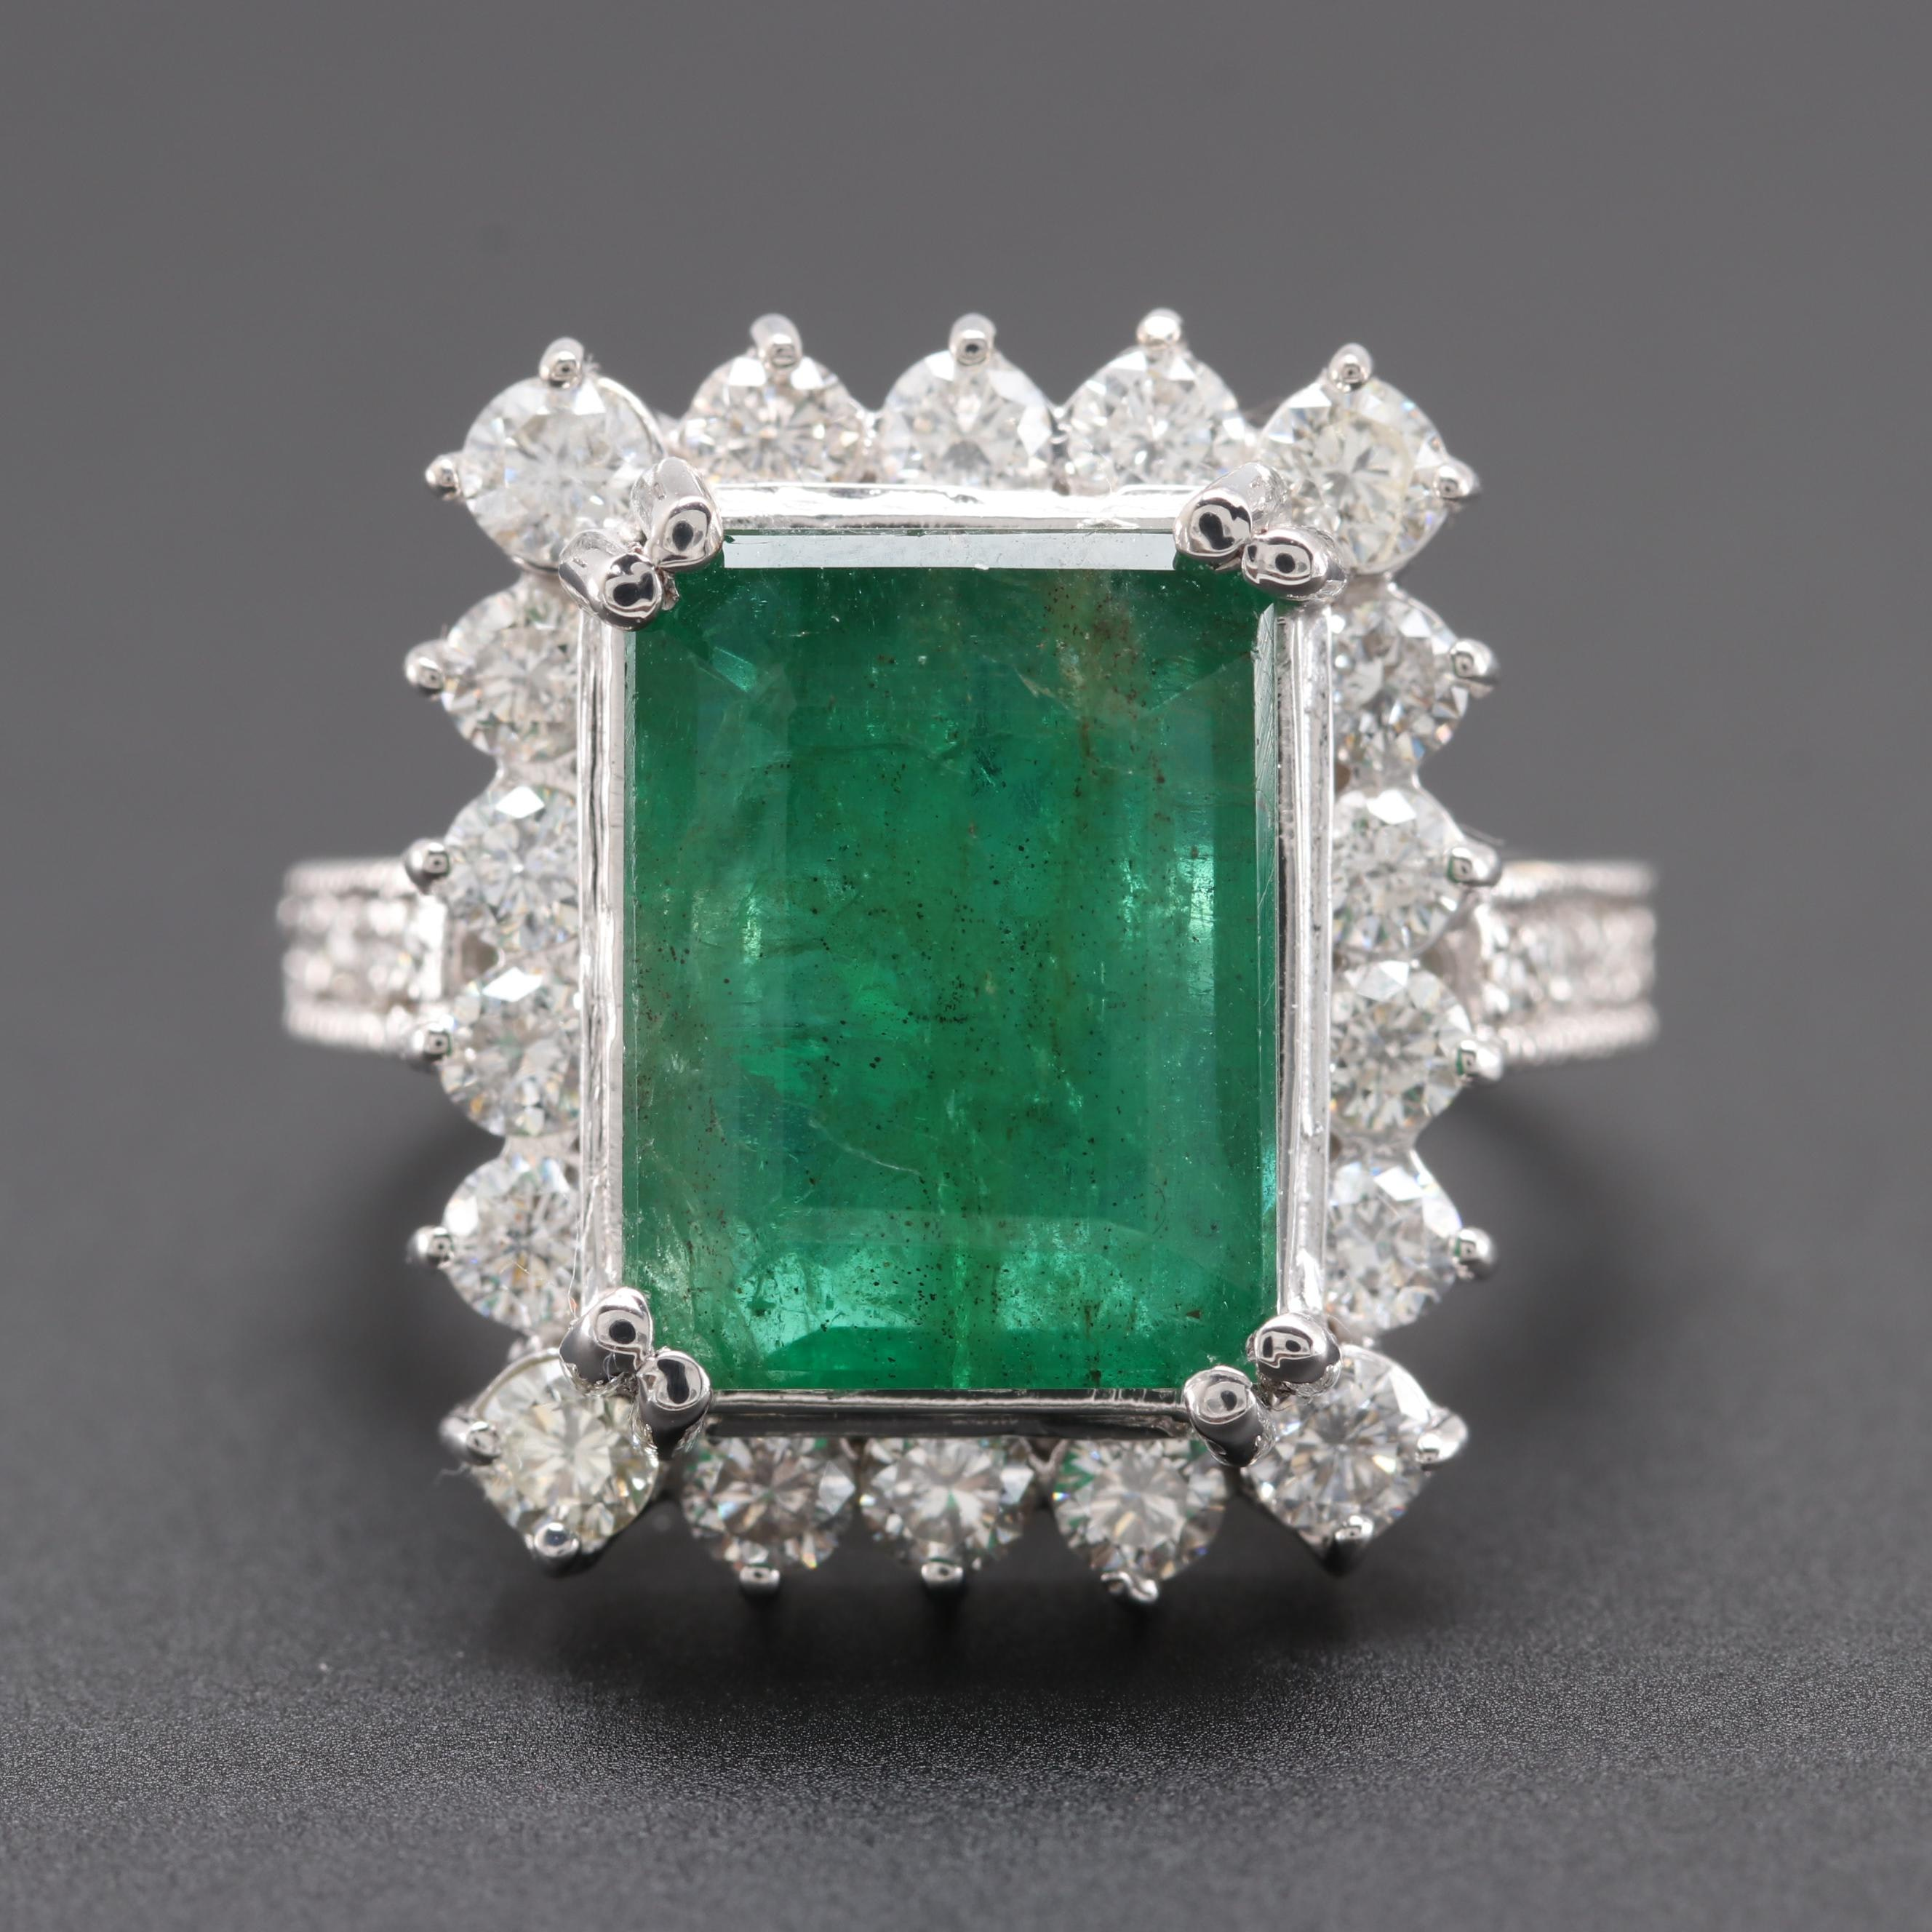 18K White Gold 4.04 CT Emerald and 1.33 CTW Diamond Ring